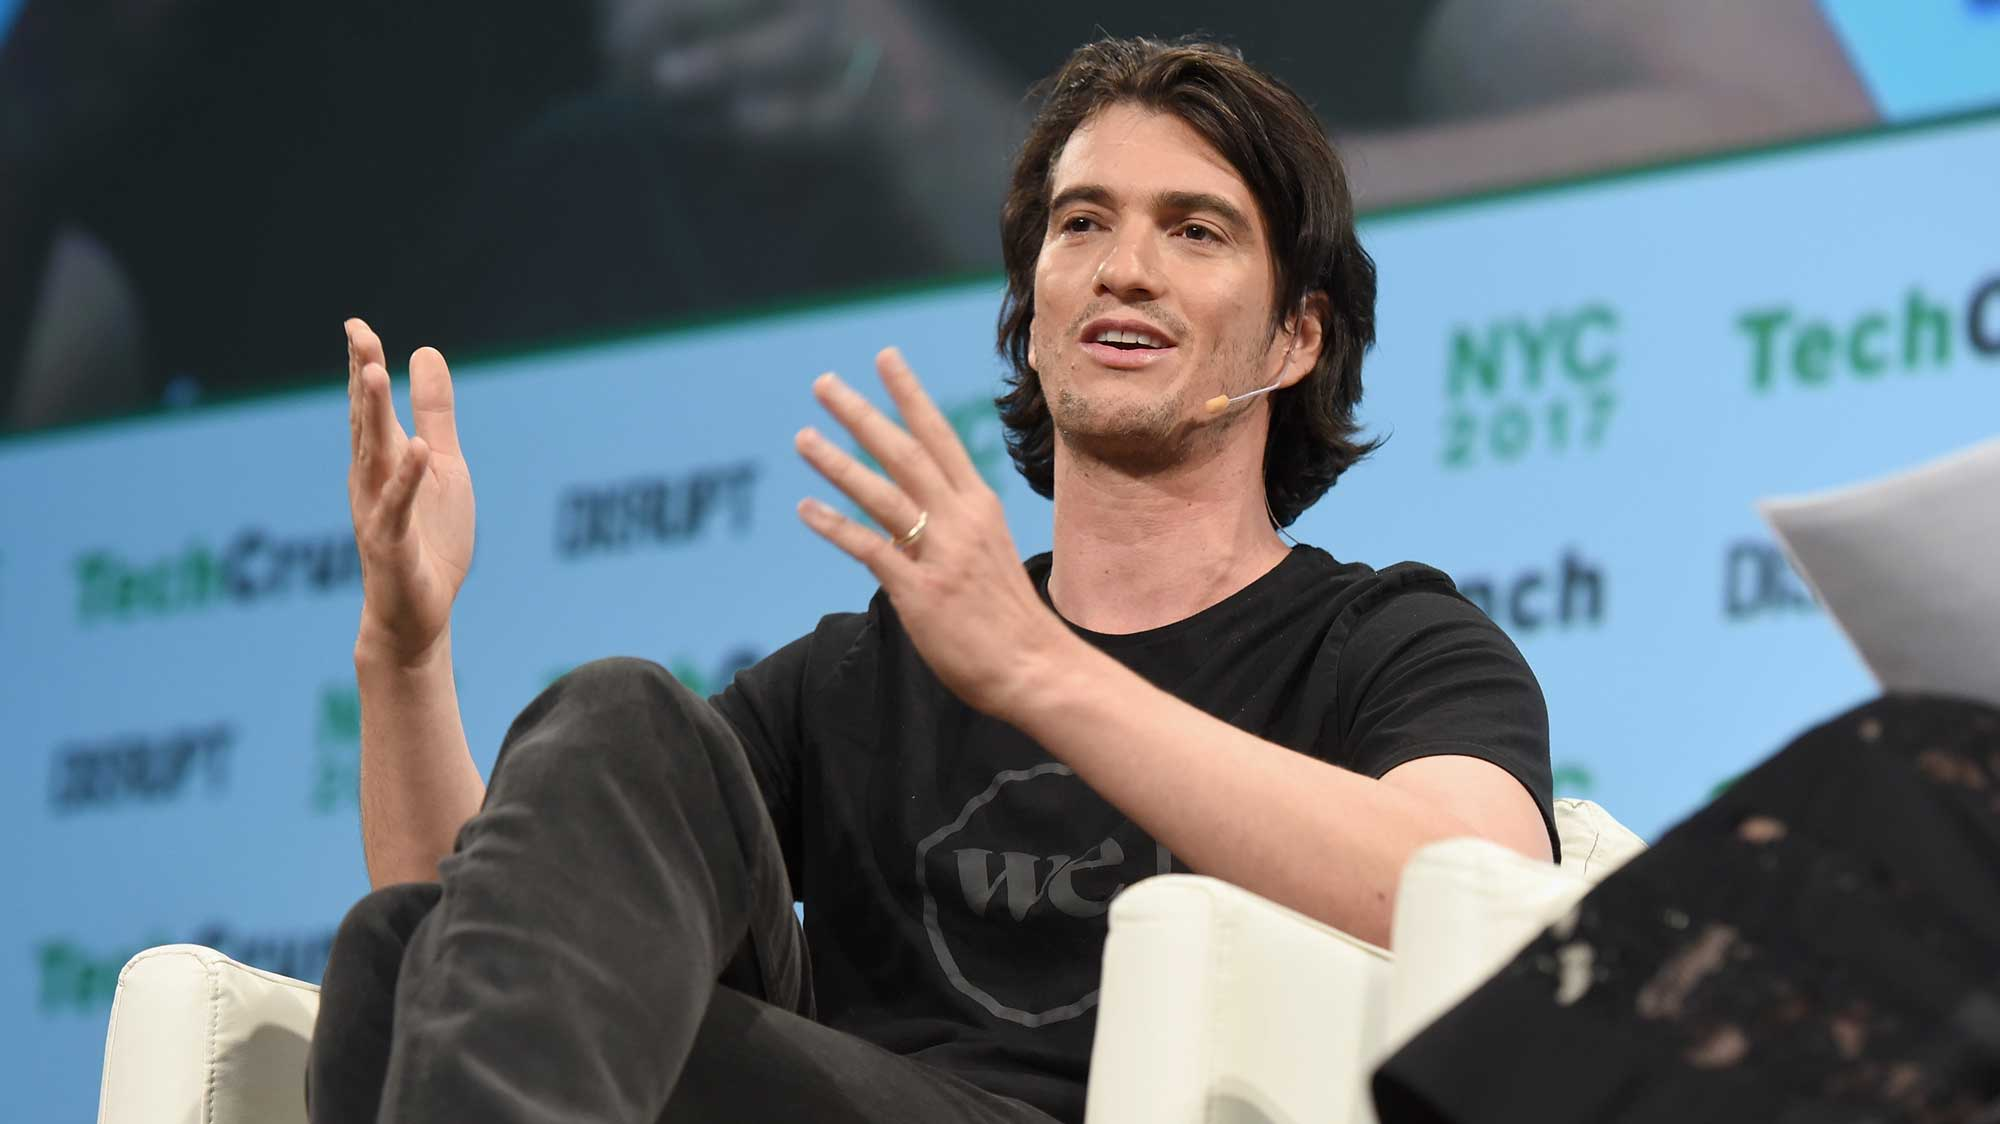 WeWork is starting a $3 billion fund to buy stakes in buildings and rent them back to itself